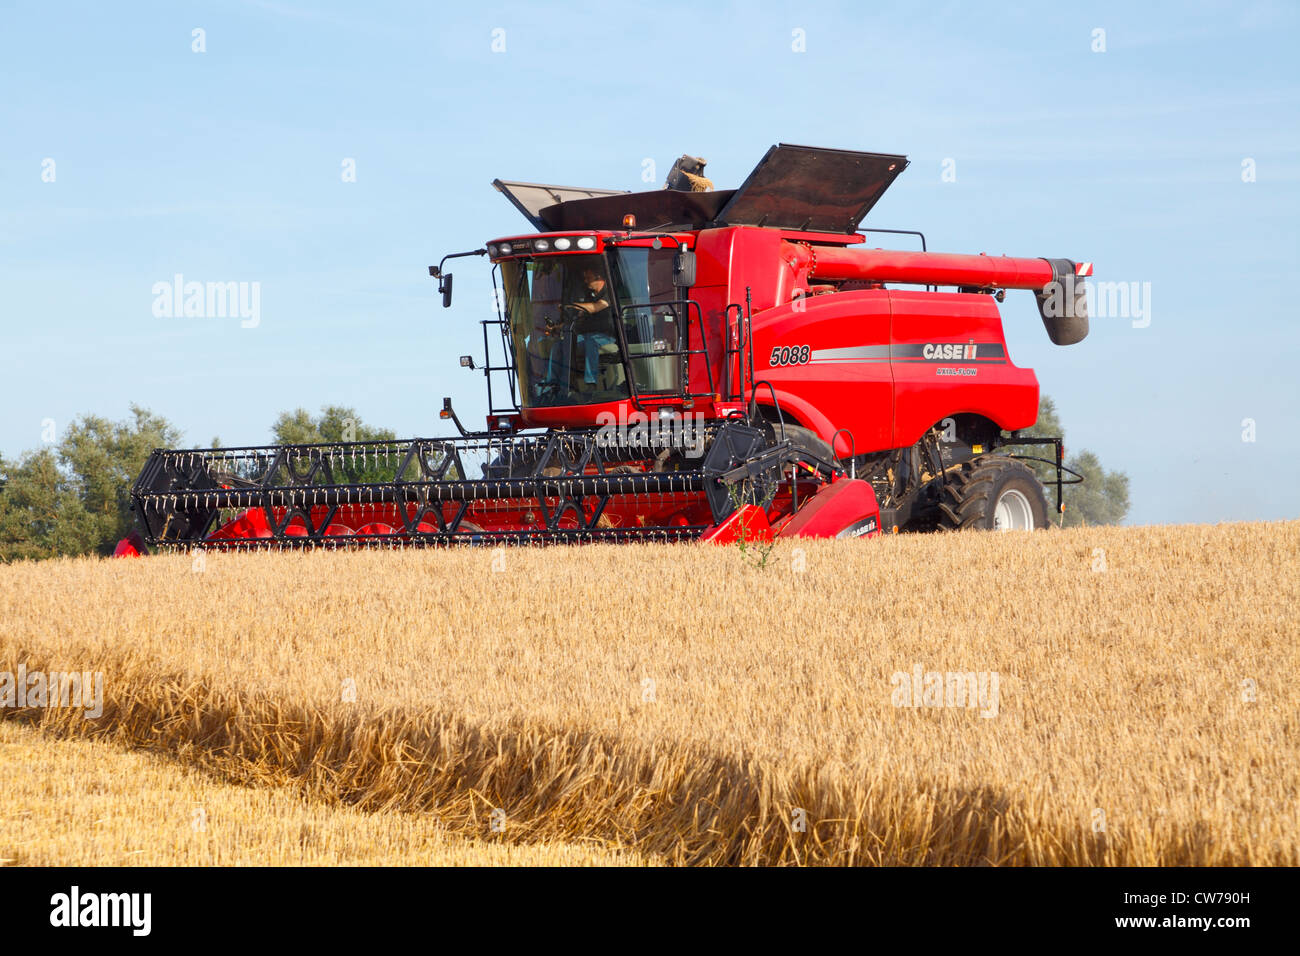 Case International Harvester : Case ih combine stock photos